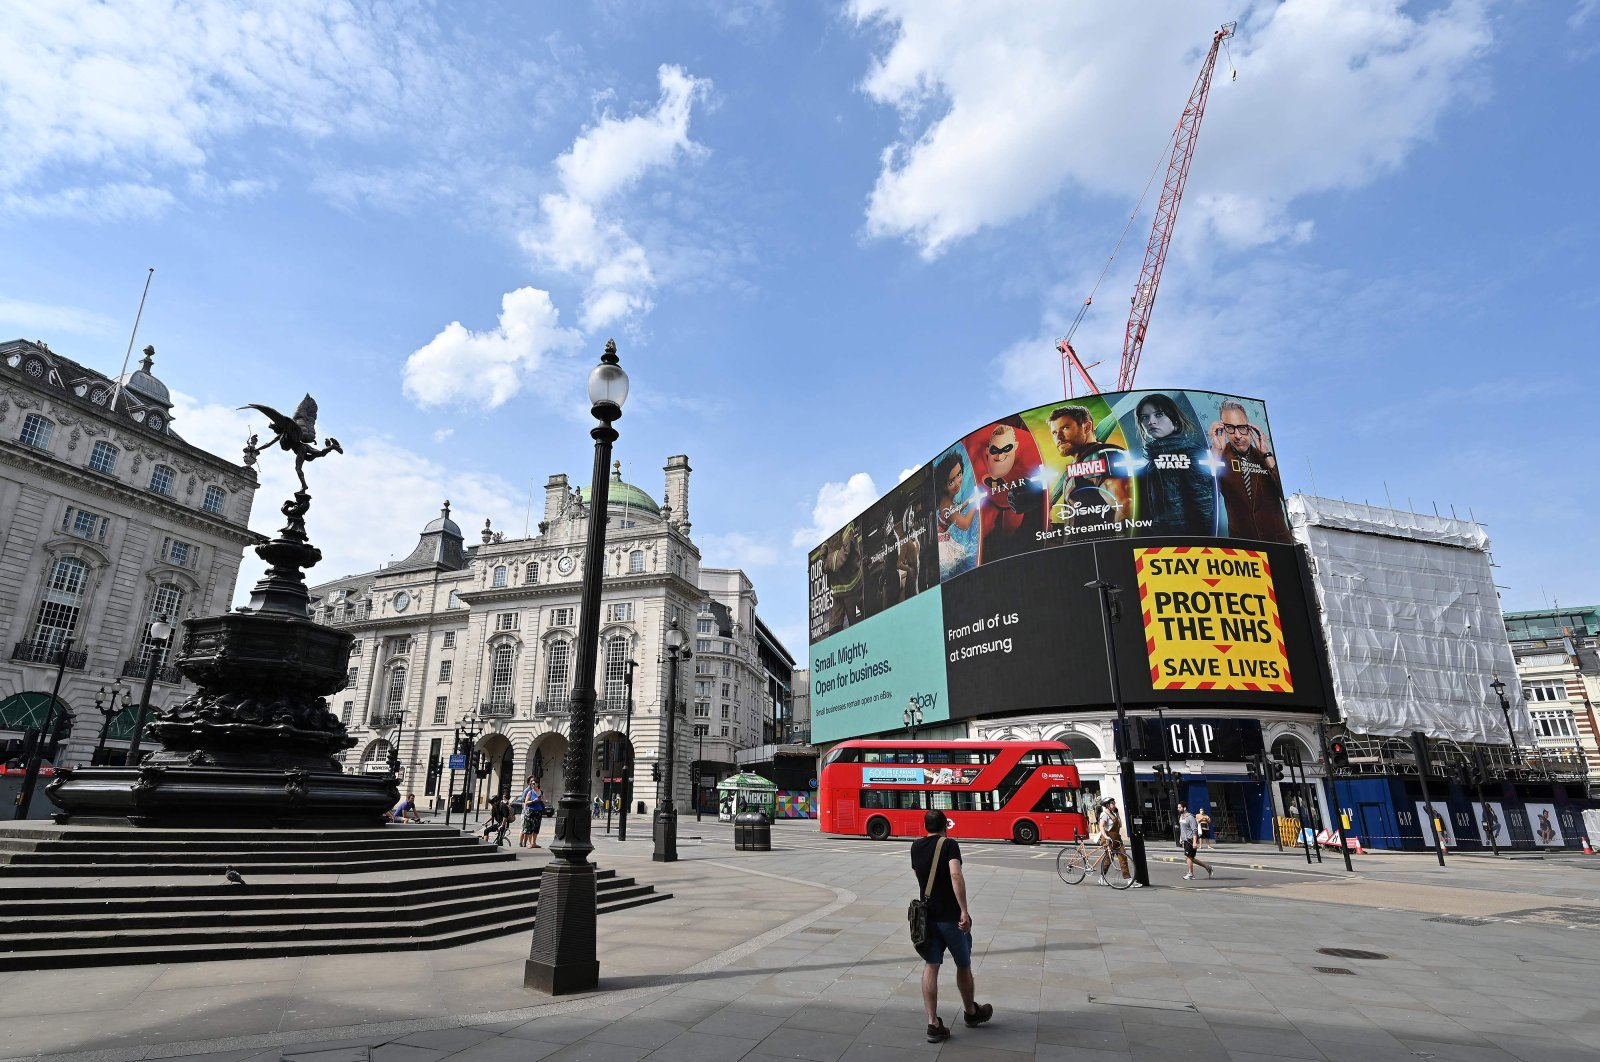 """The electronic billboard in Piccadilly Circus displays a notice telling people to """"Stay Home. Protect the NHS. Save Lives."""" near the empty Shaftesbury Memorial Fountain, London, April 12, 2020. (AFP Photo)"""